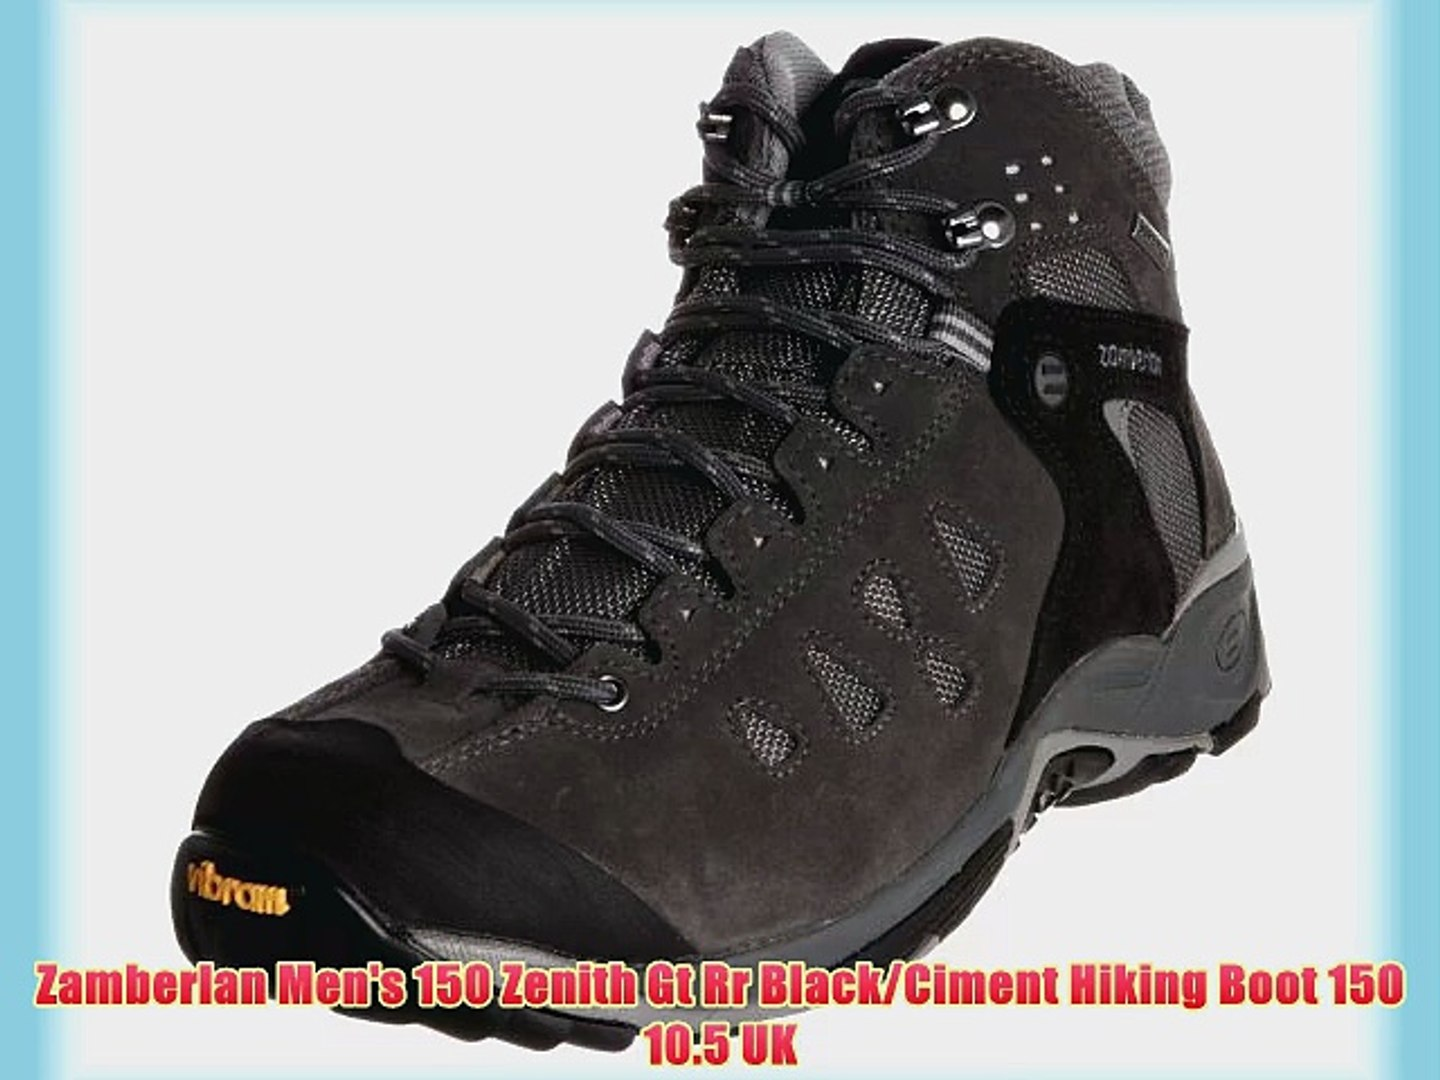 85d0ce96e1f Zamberlan Men's 150 Zenith Gt Rr Black/Ciment Hiking Boot 150 10.5 UK